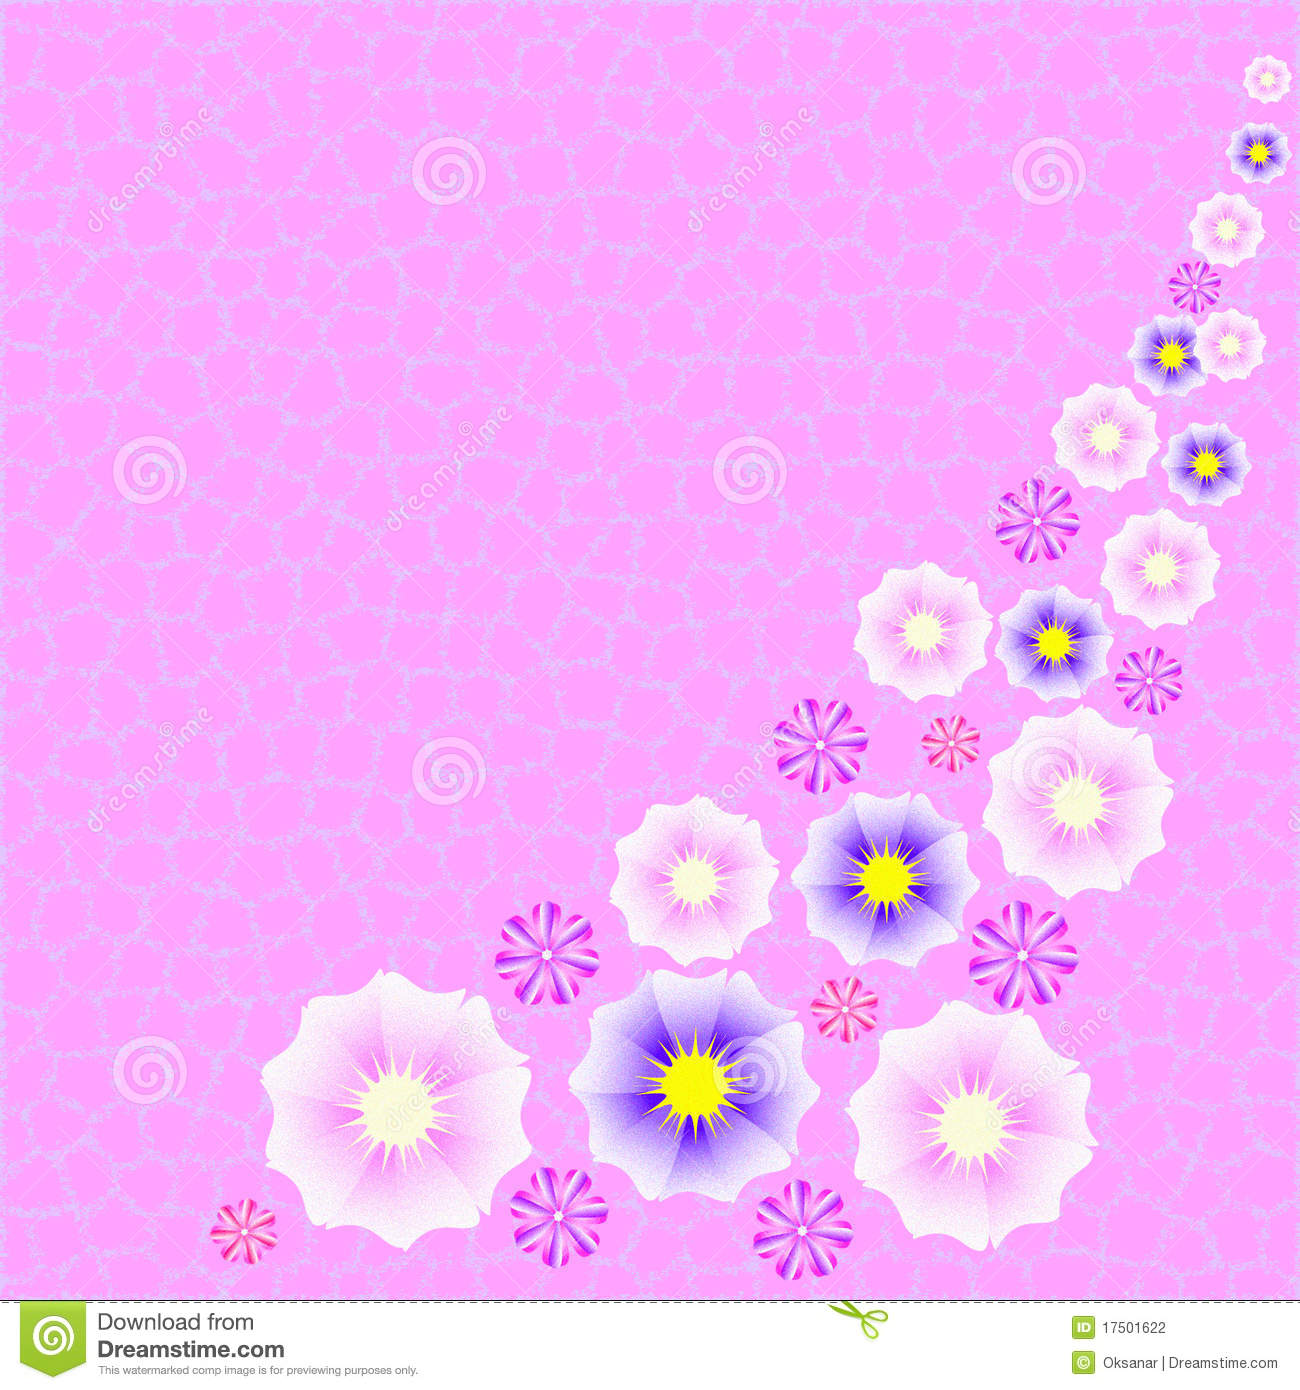 Pink Fuzzy Floral Background Stock Photography   Image  17501622